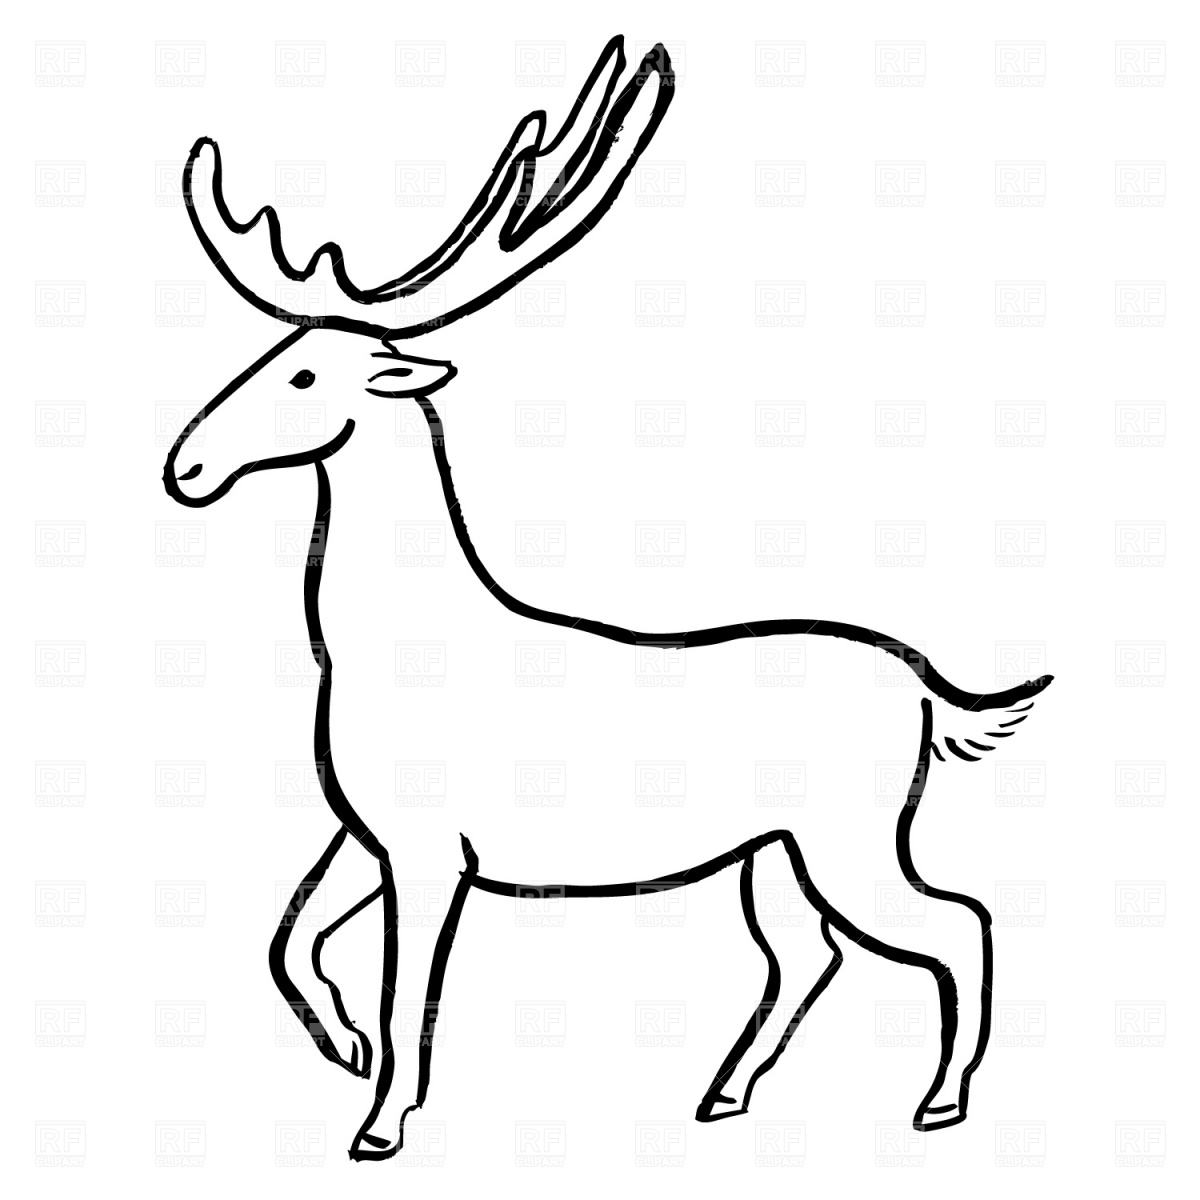 Elk clipart black and white 1 » Clipart Station.